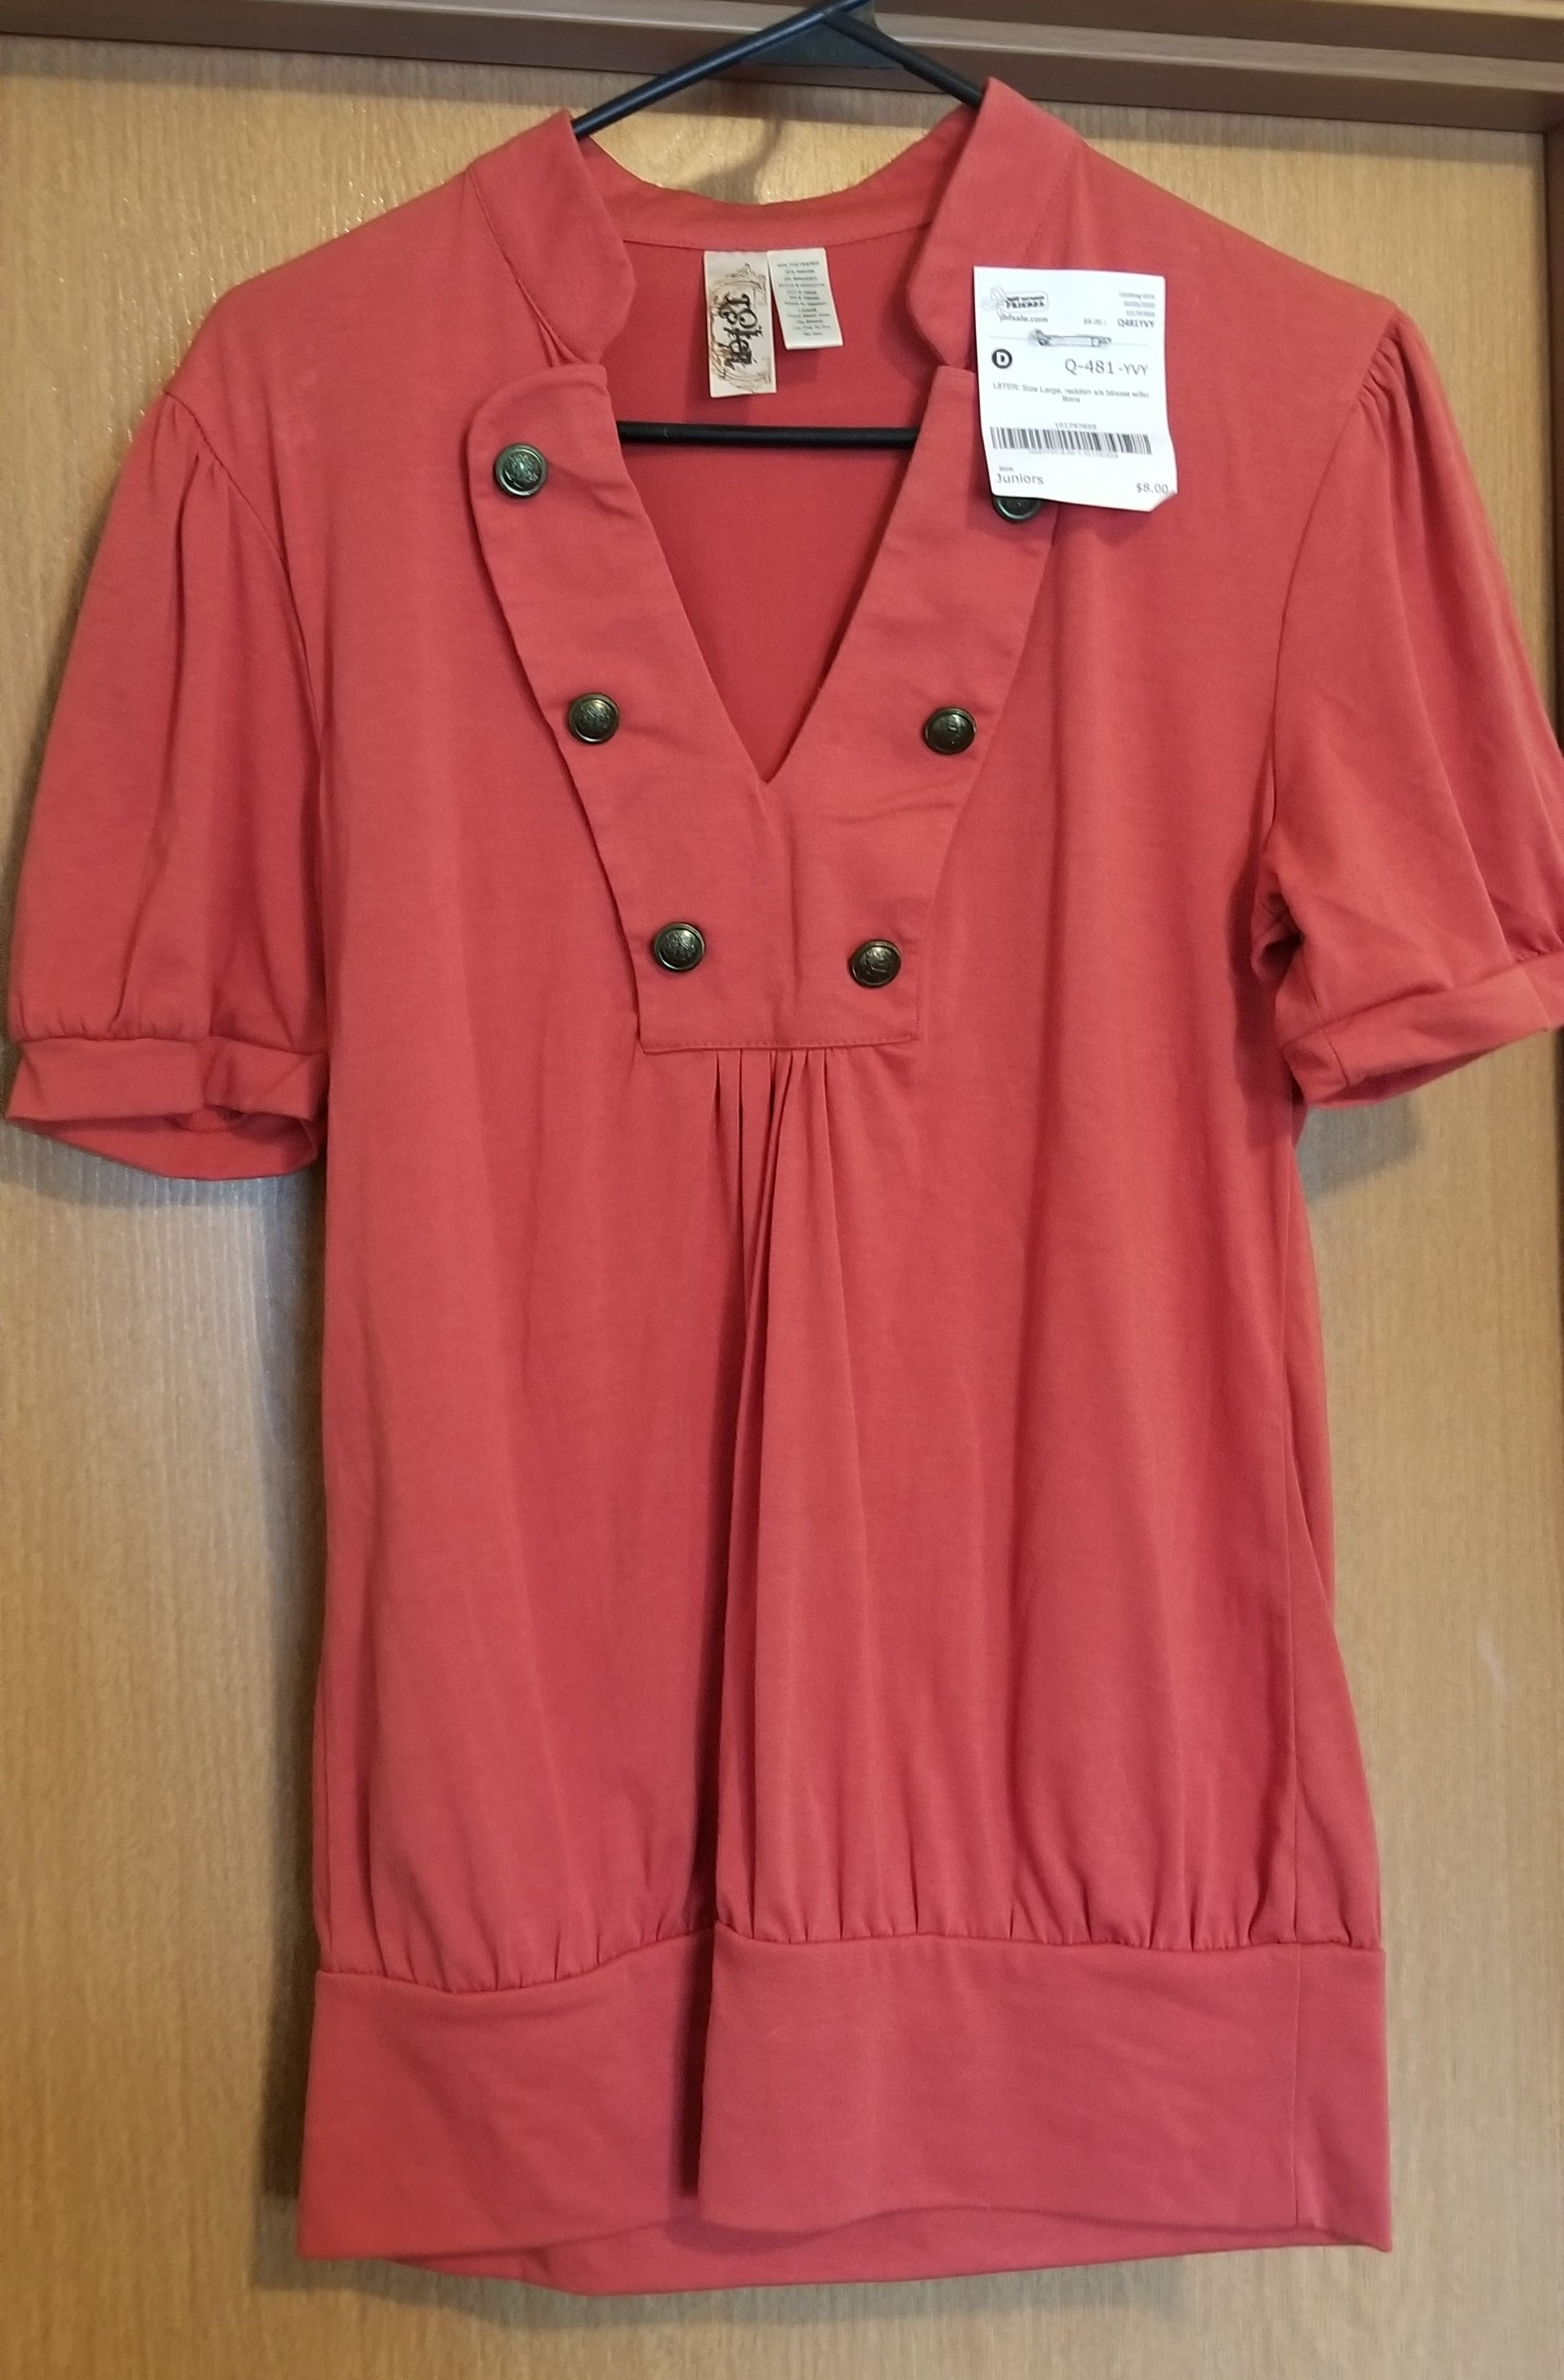 L8TER SZ LARGE juniors reddish short sleeve blouse